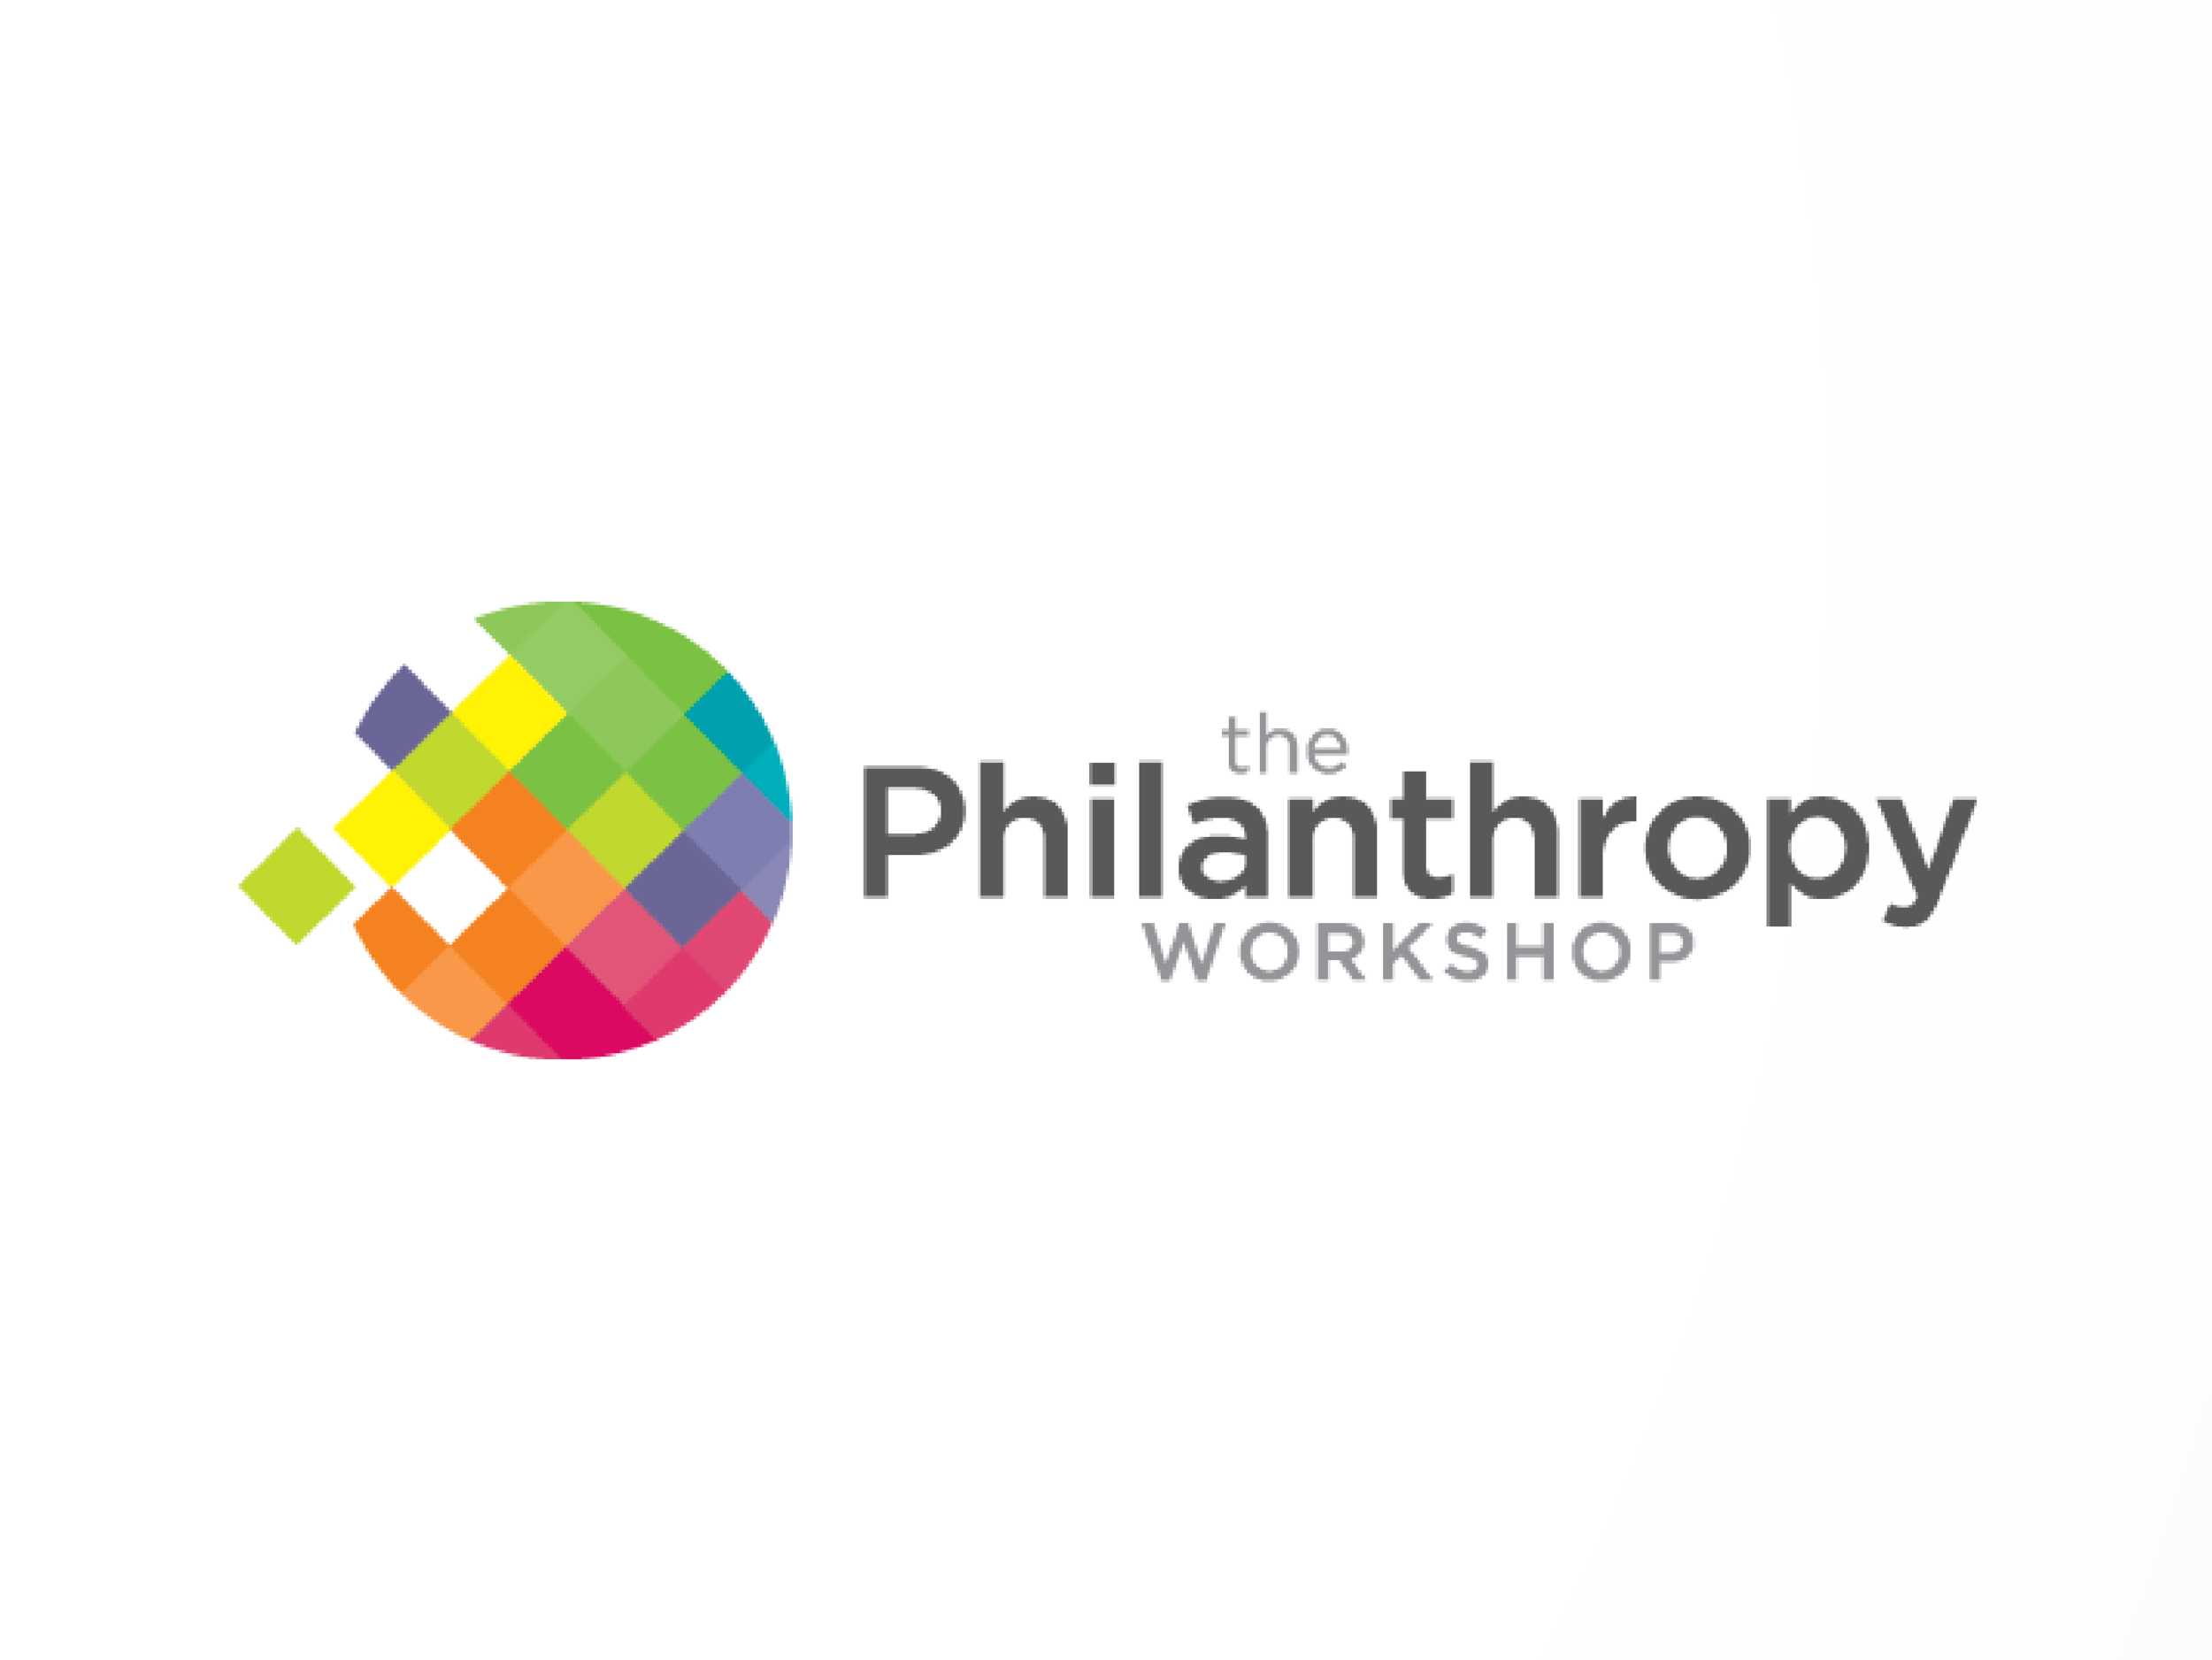 Strategic Philanthropy - In these sessions, The Philanthropy Workshop distills their 3-week course for global philanthropists on creating a strategic framework that leads to measurable, lasting results. Sessions are designed to enable both organizations and individuals to become more impactful change-makers in their communities.